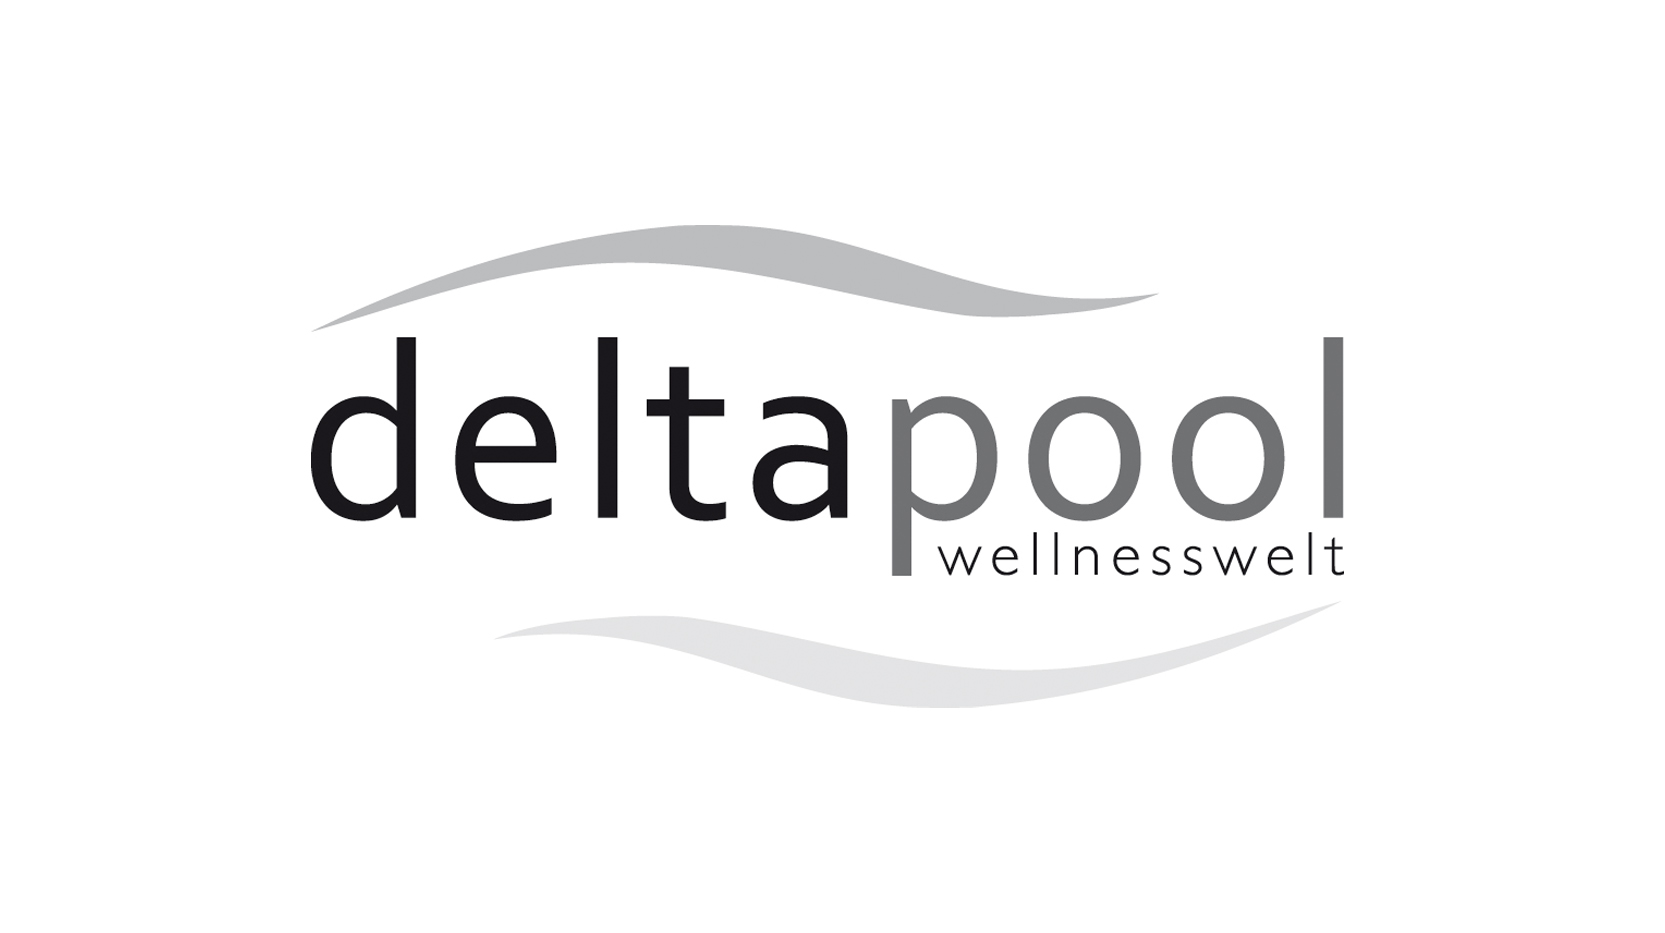 Deltapool